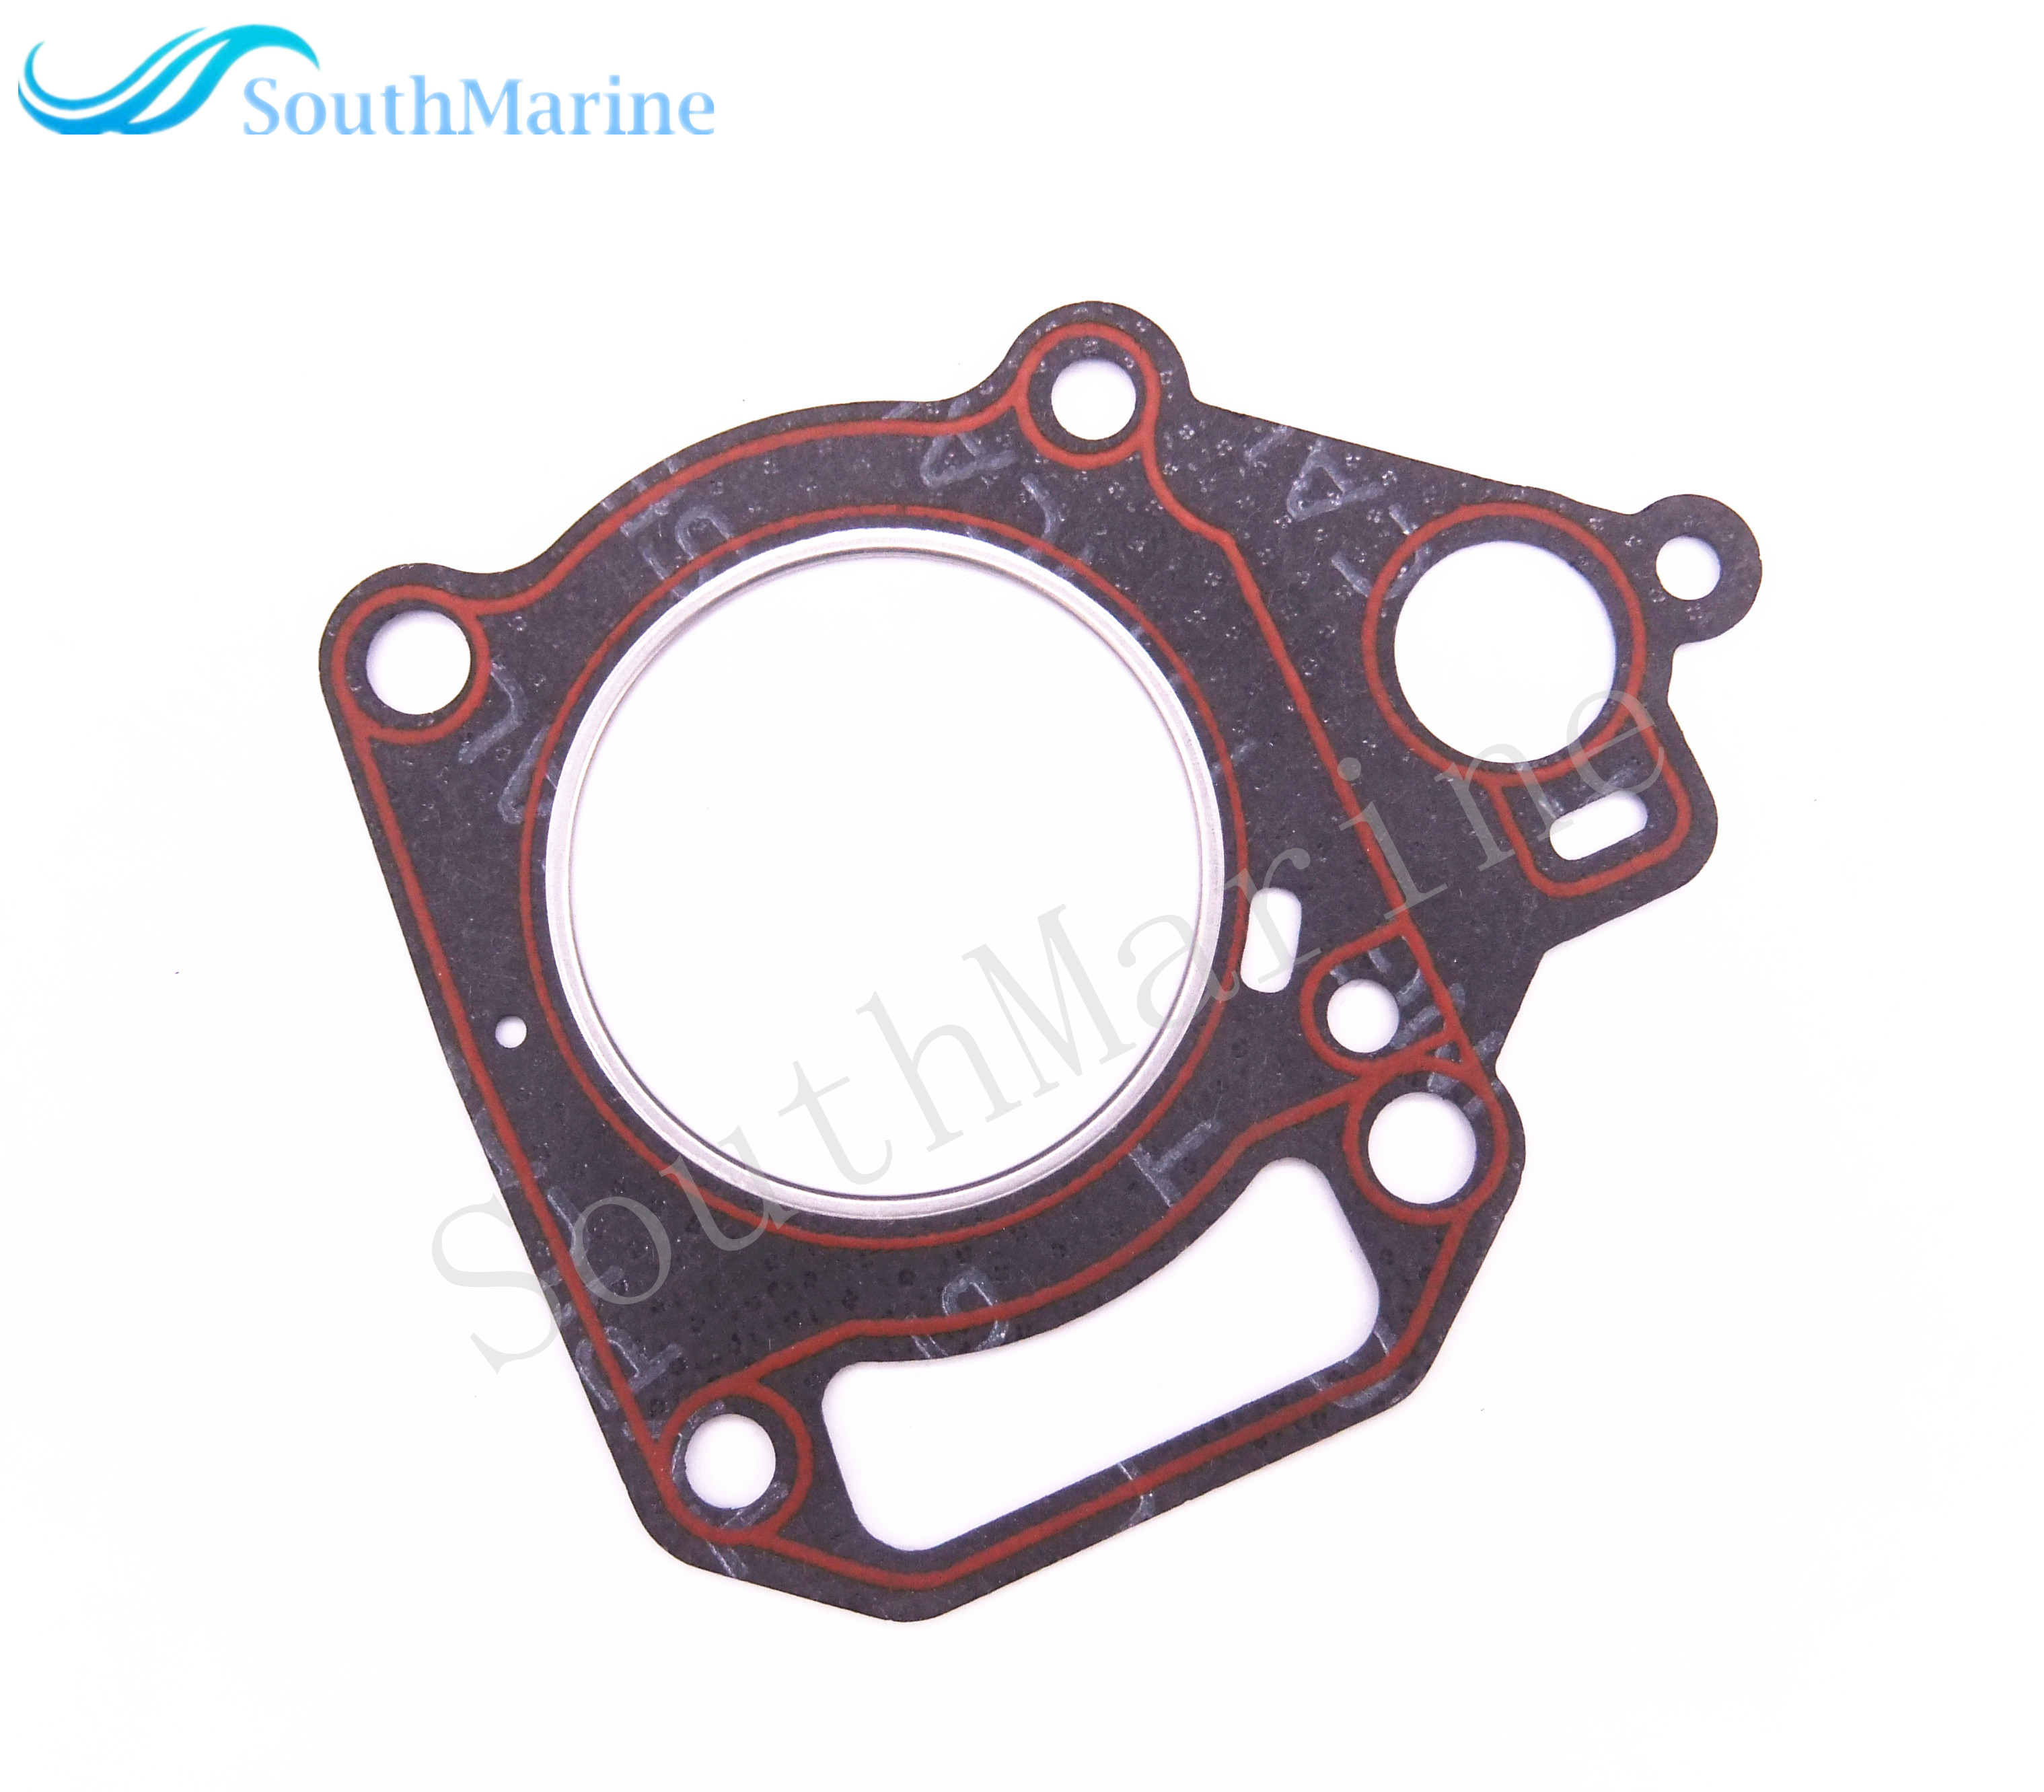 Outboard Engine 67D-11181-A0 Cylinder Head Gasket for Yamaha 4-Stroke F4 Boat Motor Free Shipping